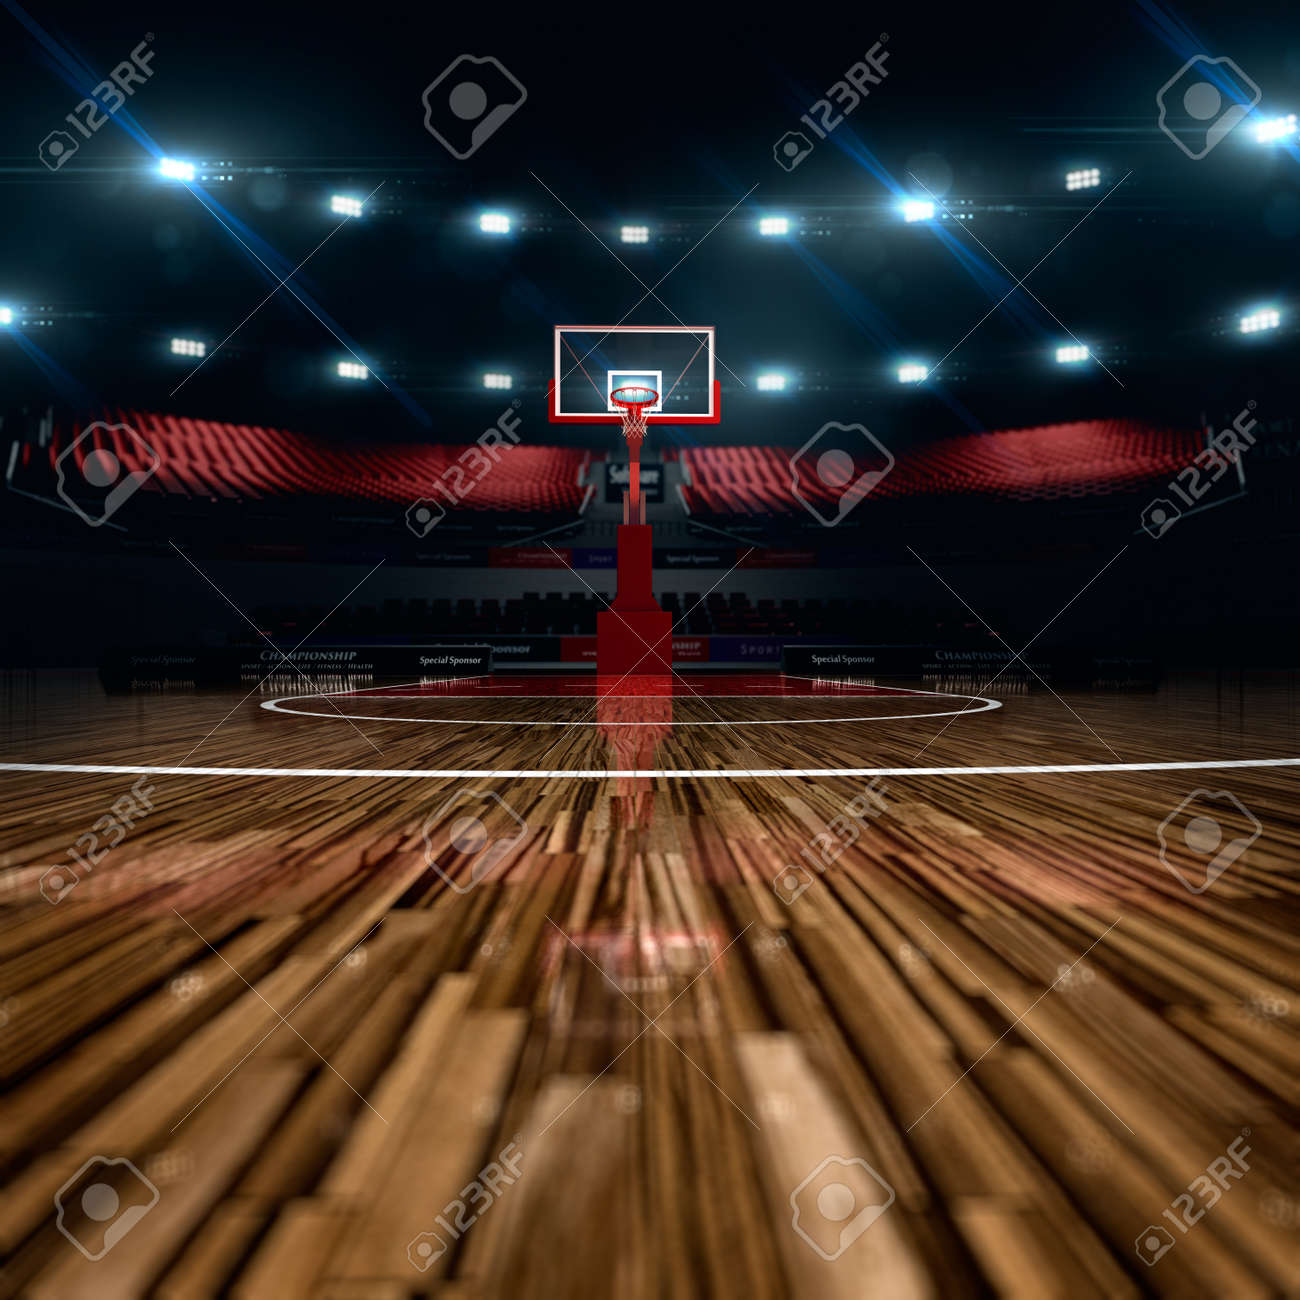 basketball court stock photos royalty free basketball court